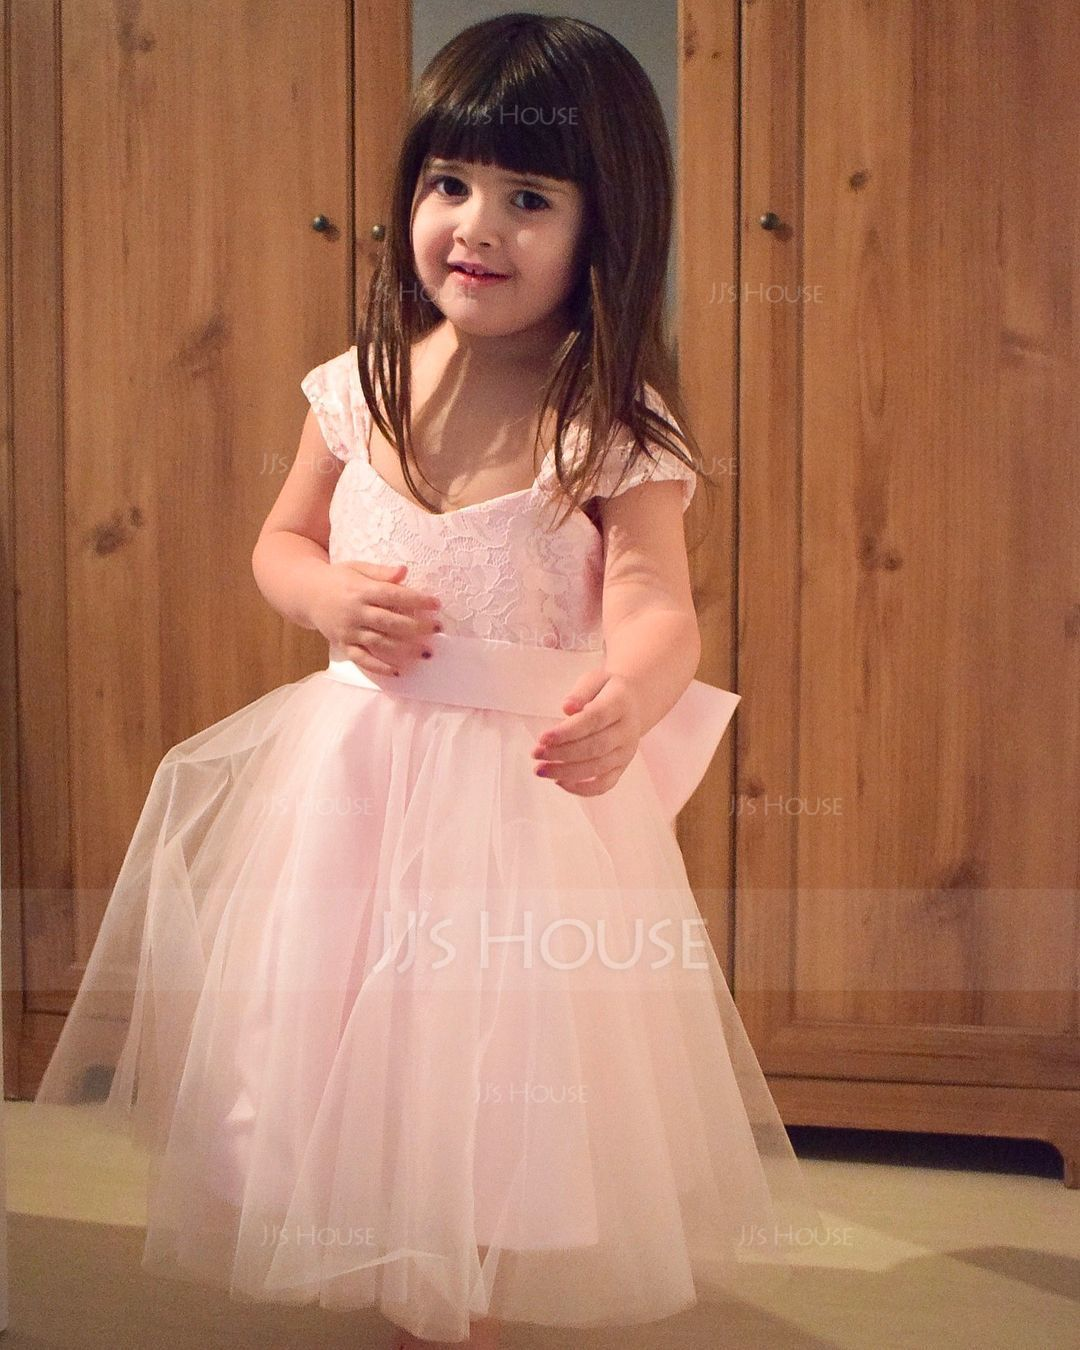 A-Line/Princess Knee-length Flower Girl Dress - Satin/Tulle/Lace Sleeveless Straps With Bow(s) (Undetachable sash) (010146218)